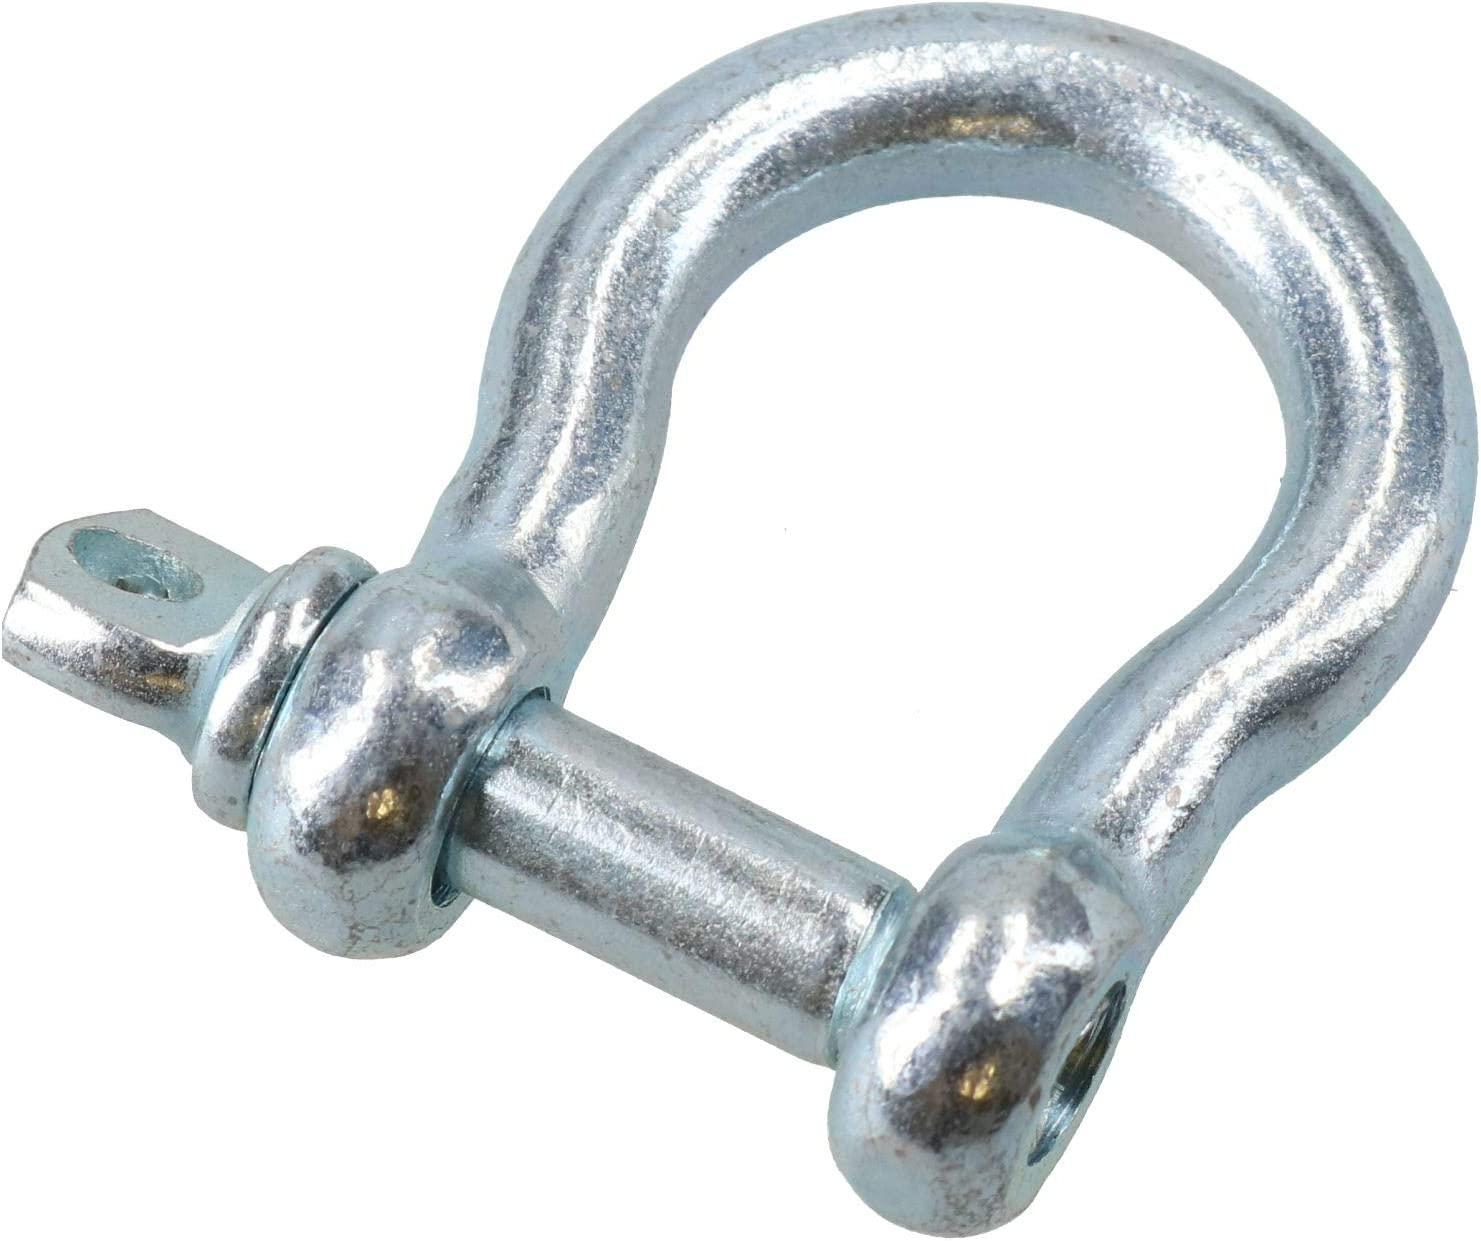 1//2 Stainless Steel Dee Shackle Load Rated SWL 2 Ton Marine Grade 316 DK39